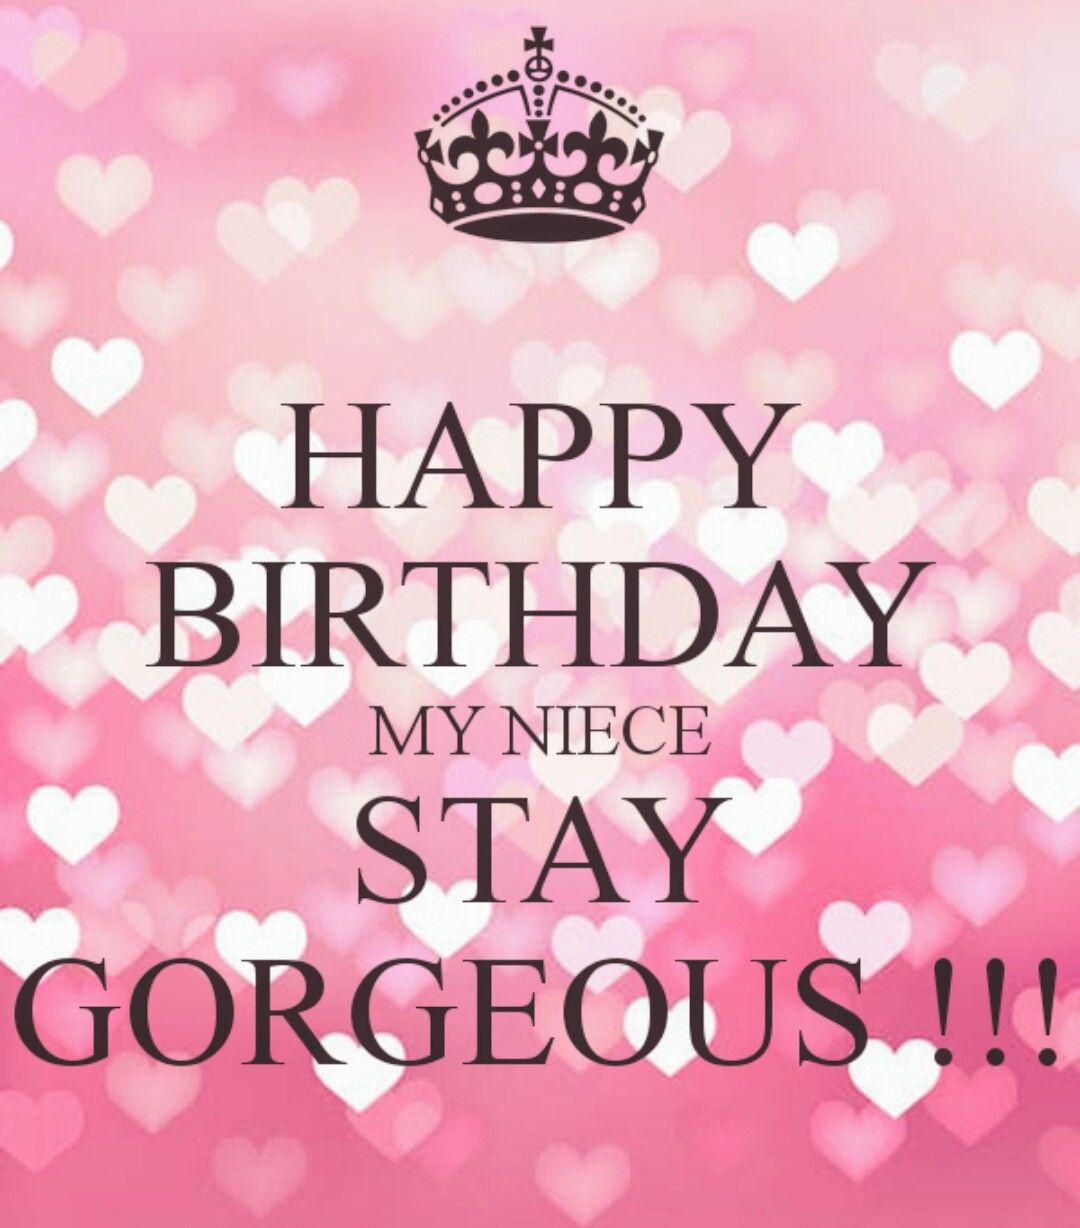 Happy Birthday Images Quotes: HAPPY BIRTHDAY MY NEICE, STAY GORGEOUS! ☆♡